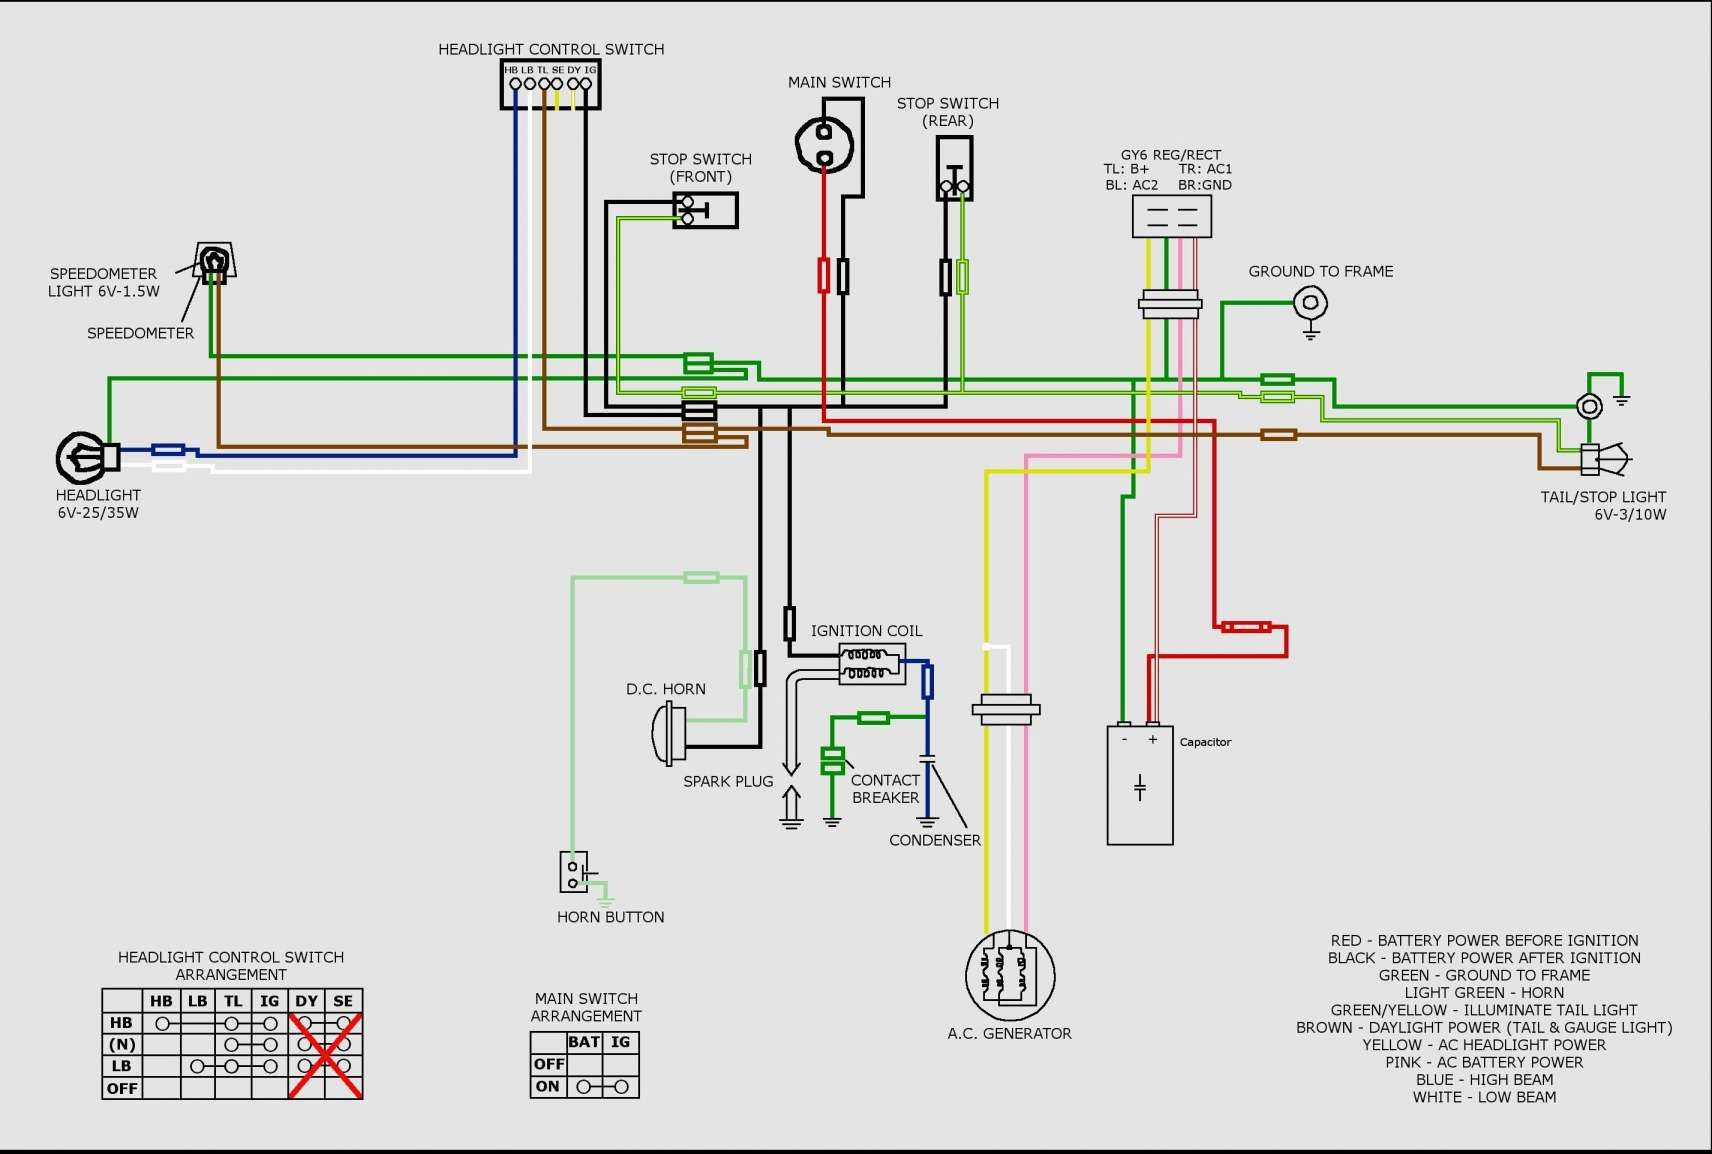 Chinese Electric Scooter Wiring Diagram And Cc Moped Wiring Diagram Free Download Schematic Getting Motorcycle Wiring 150cc Electrical Diagram